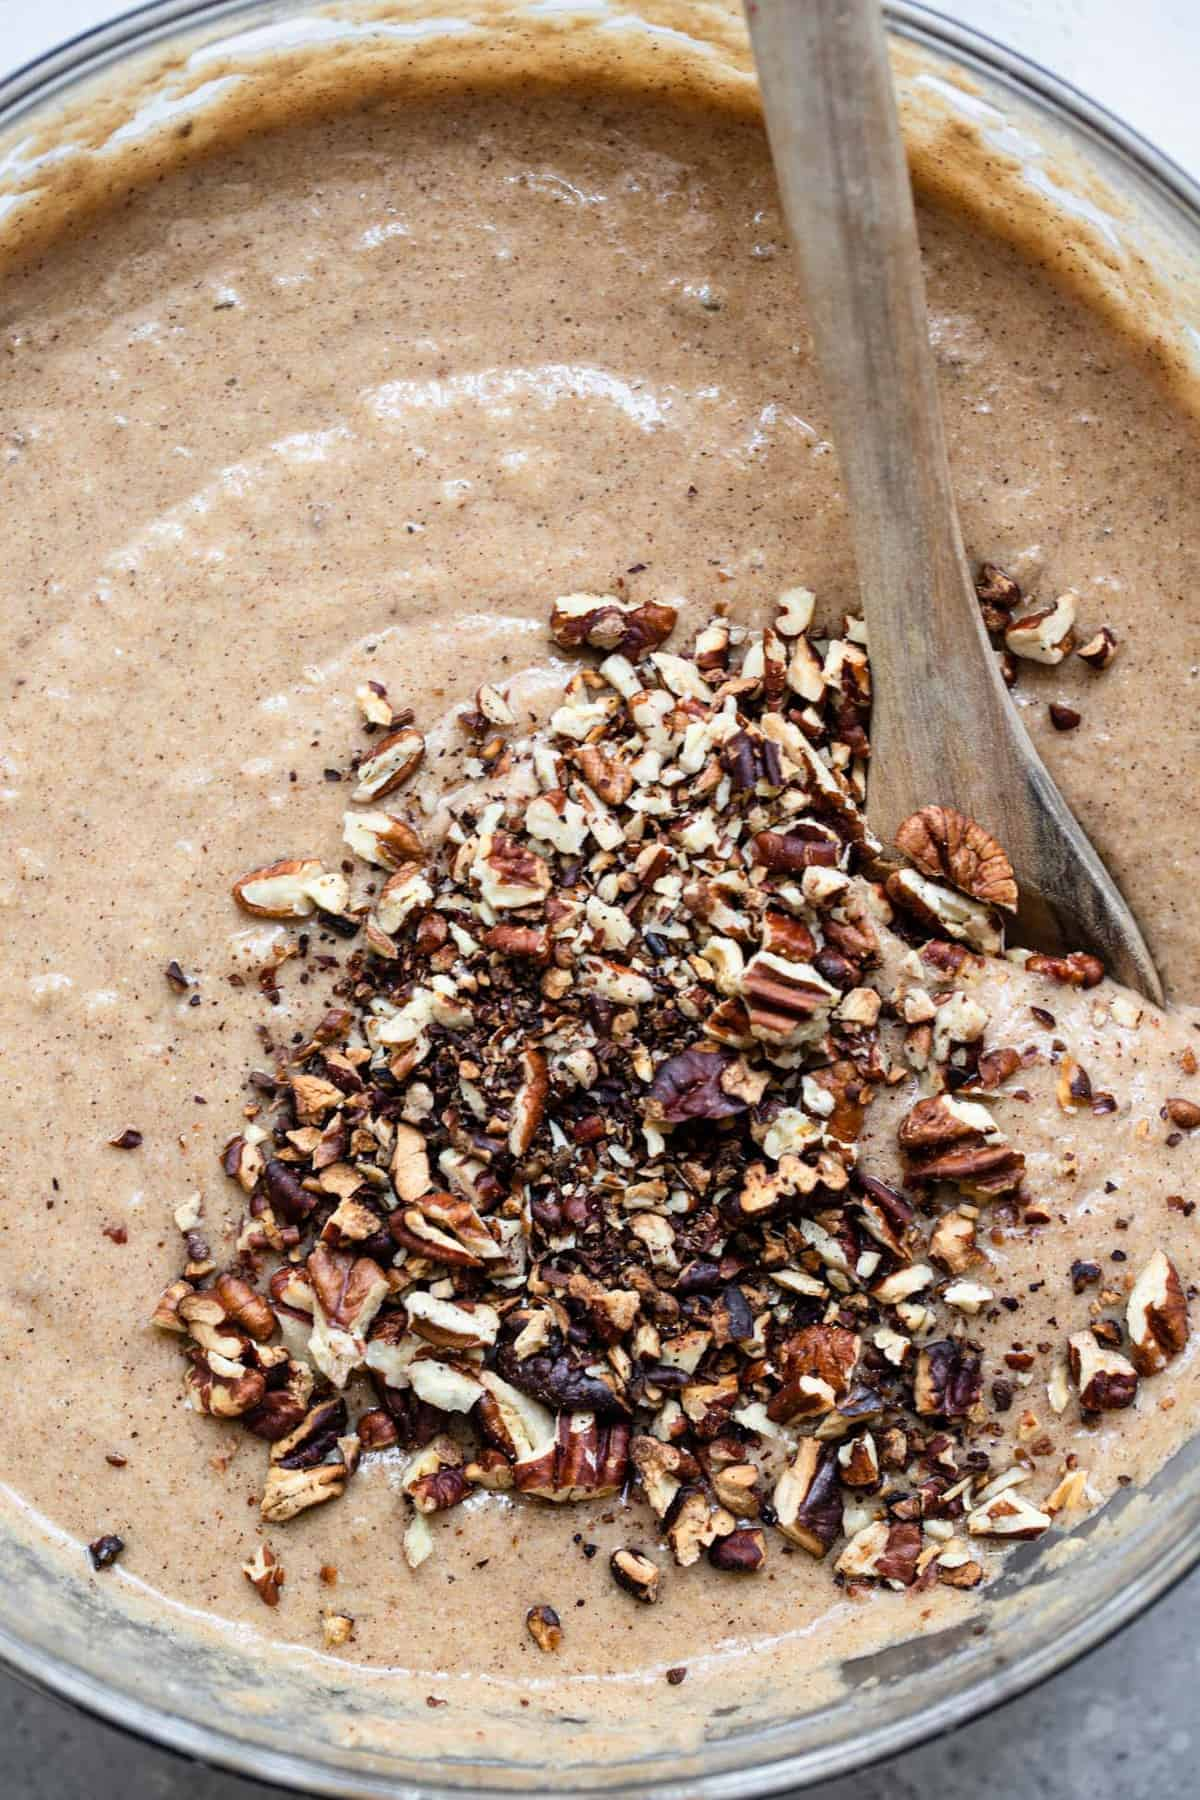 The batter of sugar free banana bread with chopped pecans